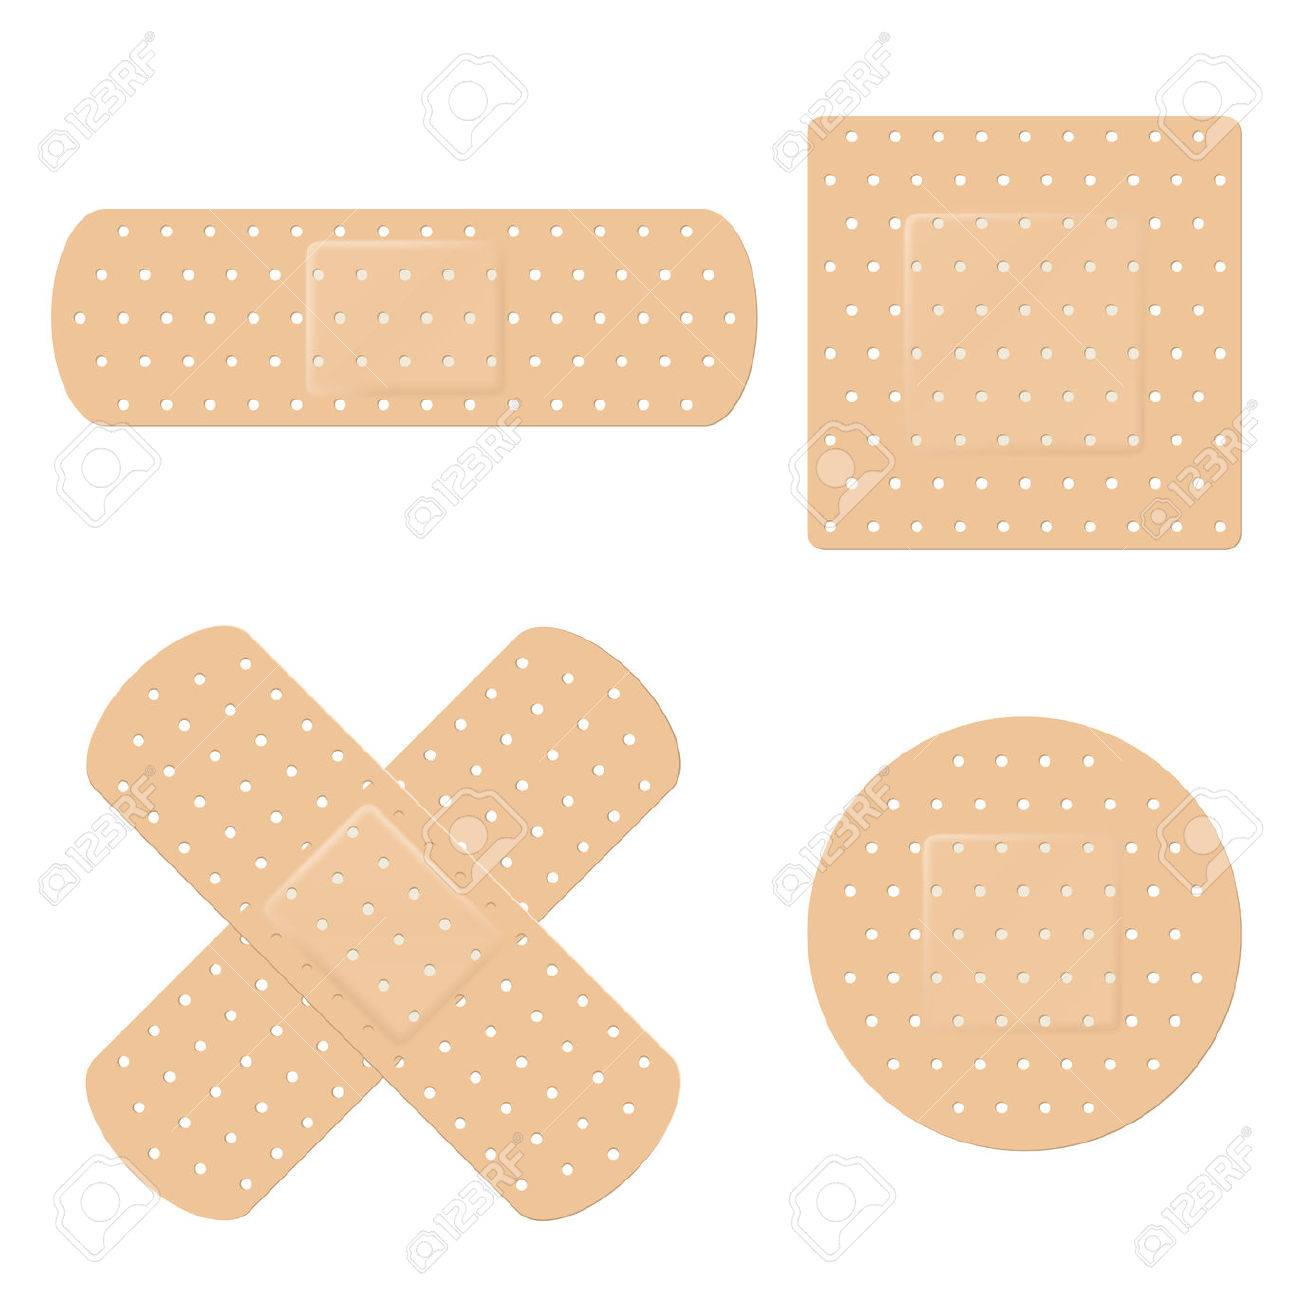 vector illustration of adhesive band aid strips royalty free